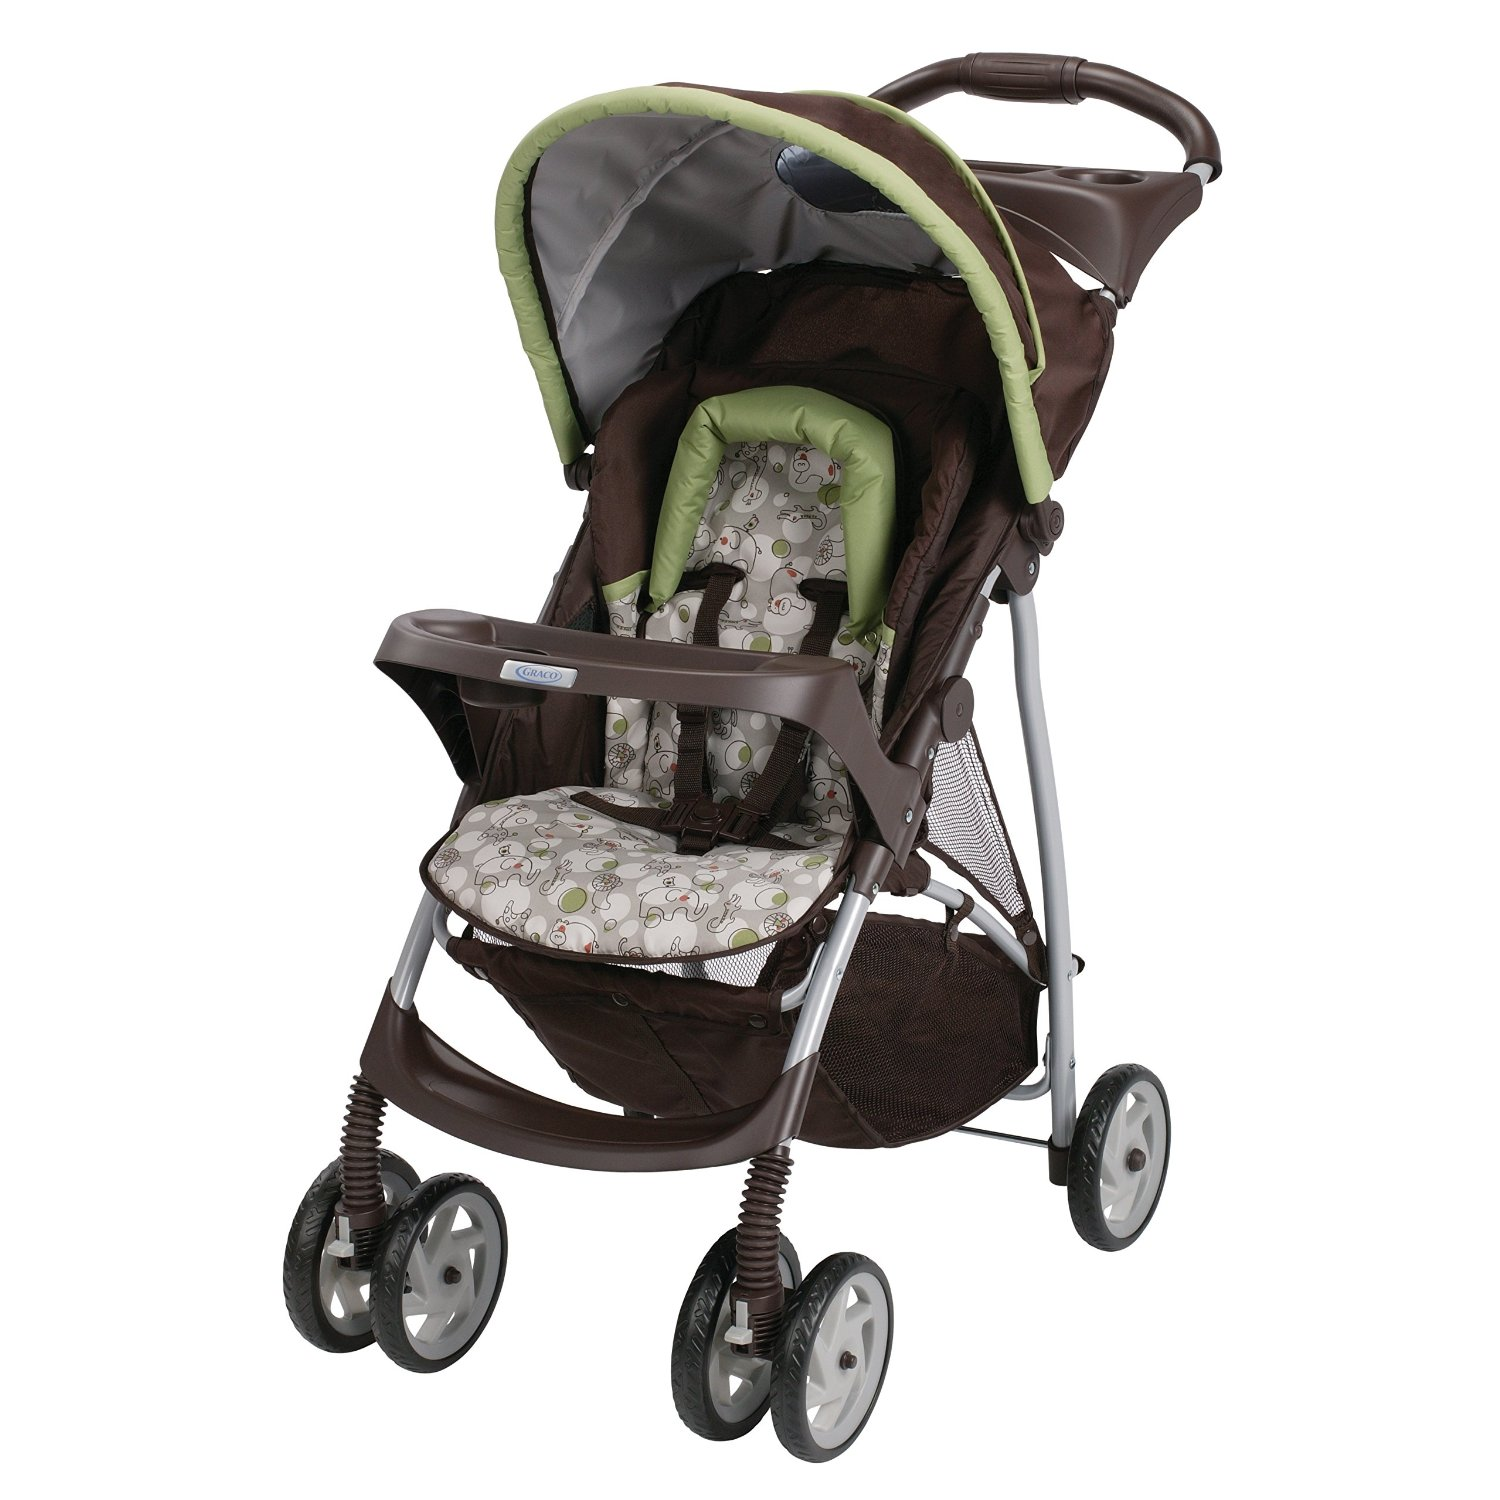 Top Rated Baby Strollers With Car Seat - Seat